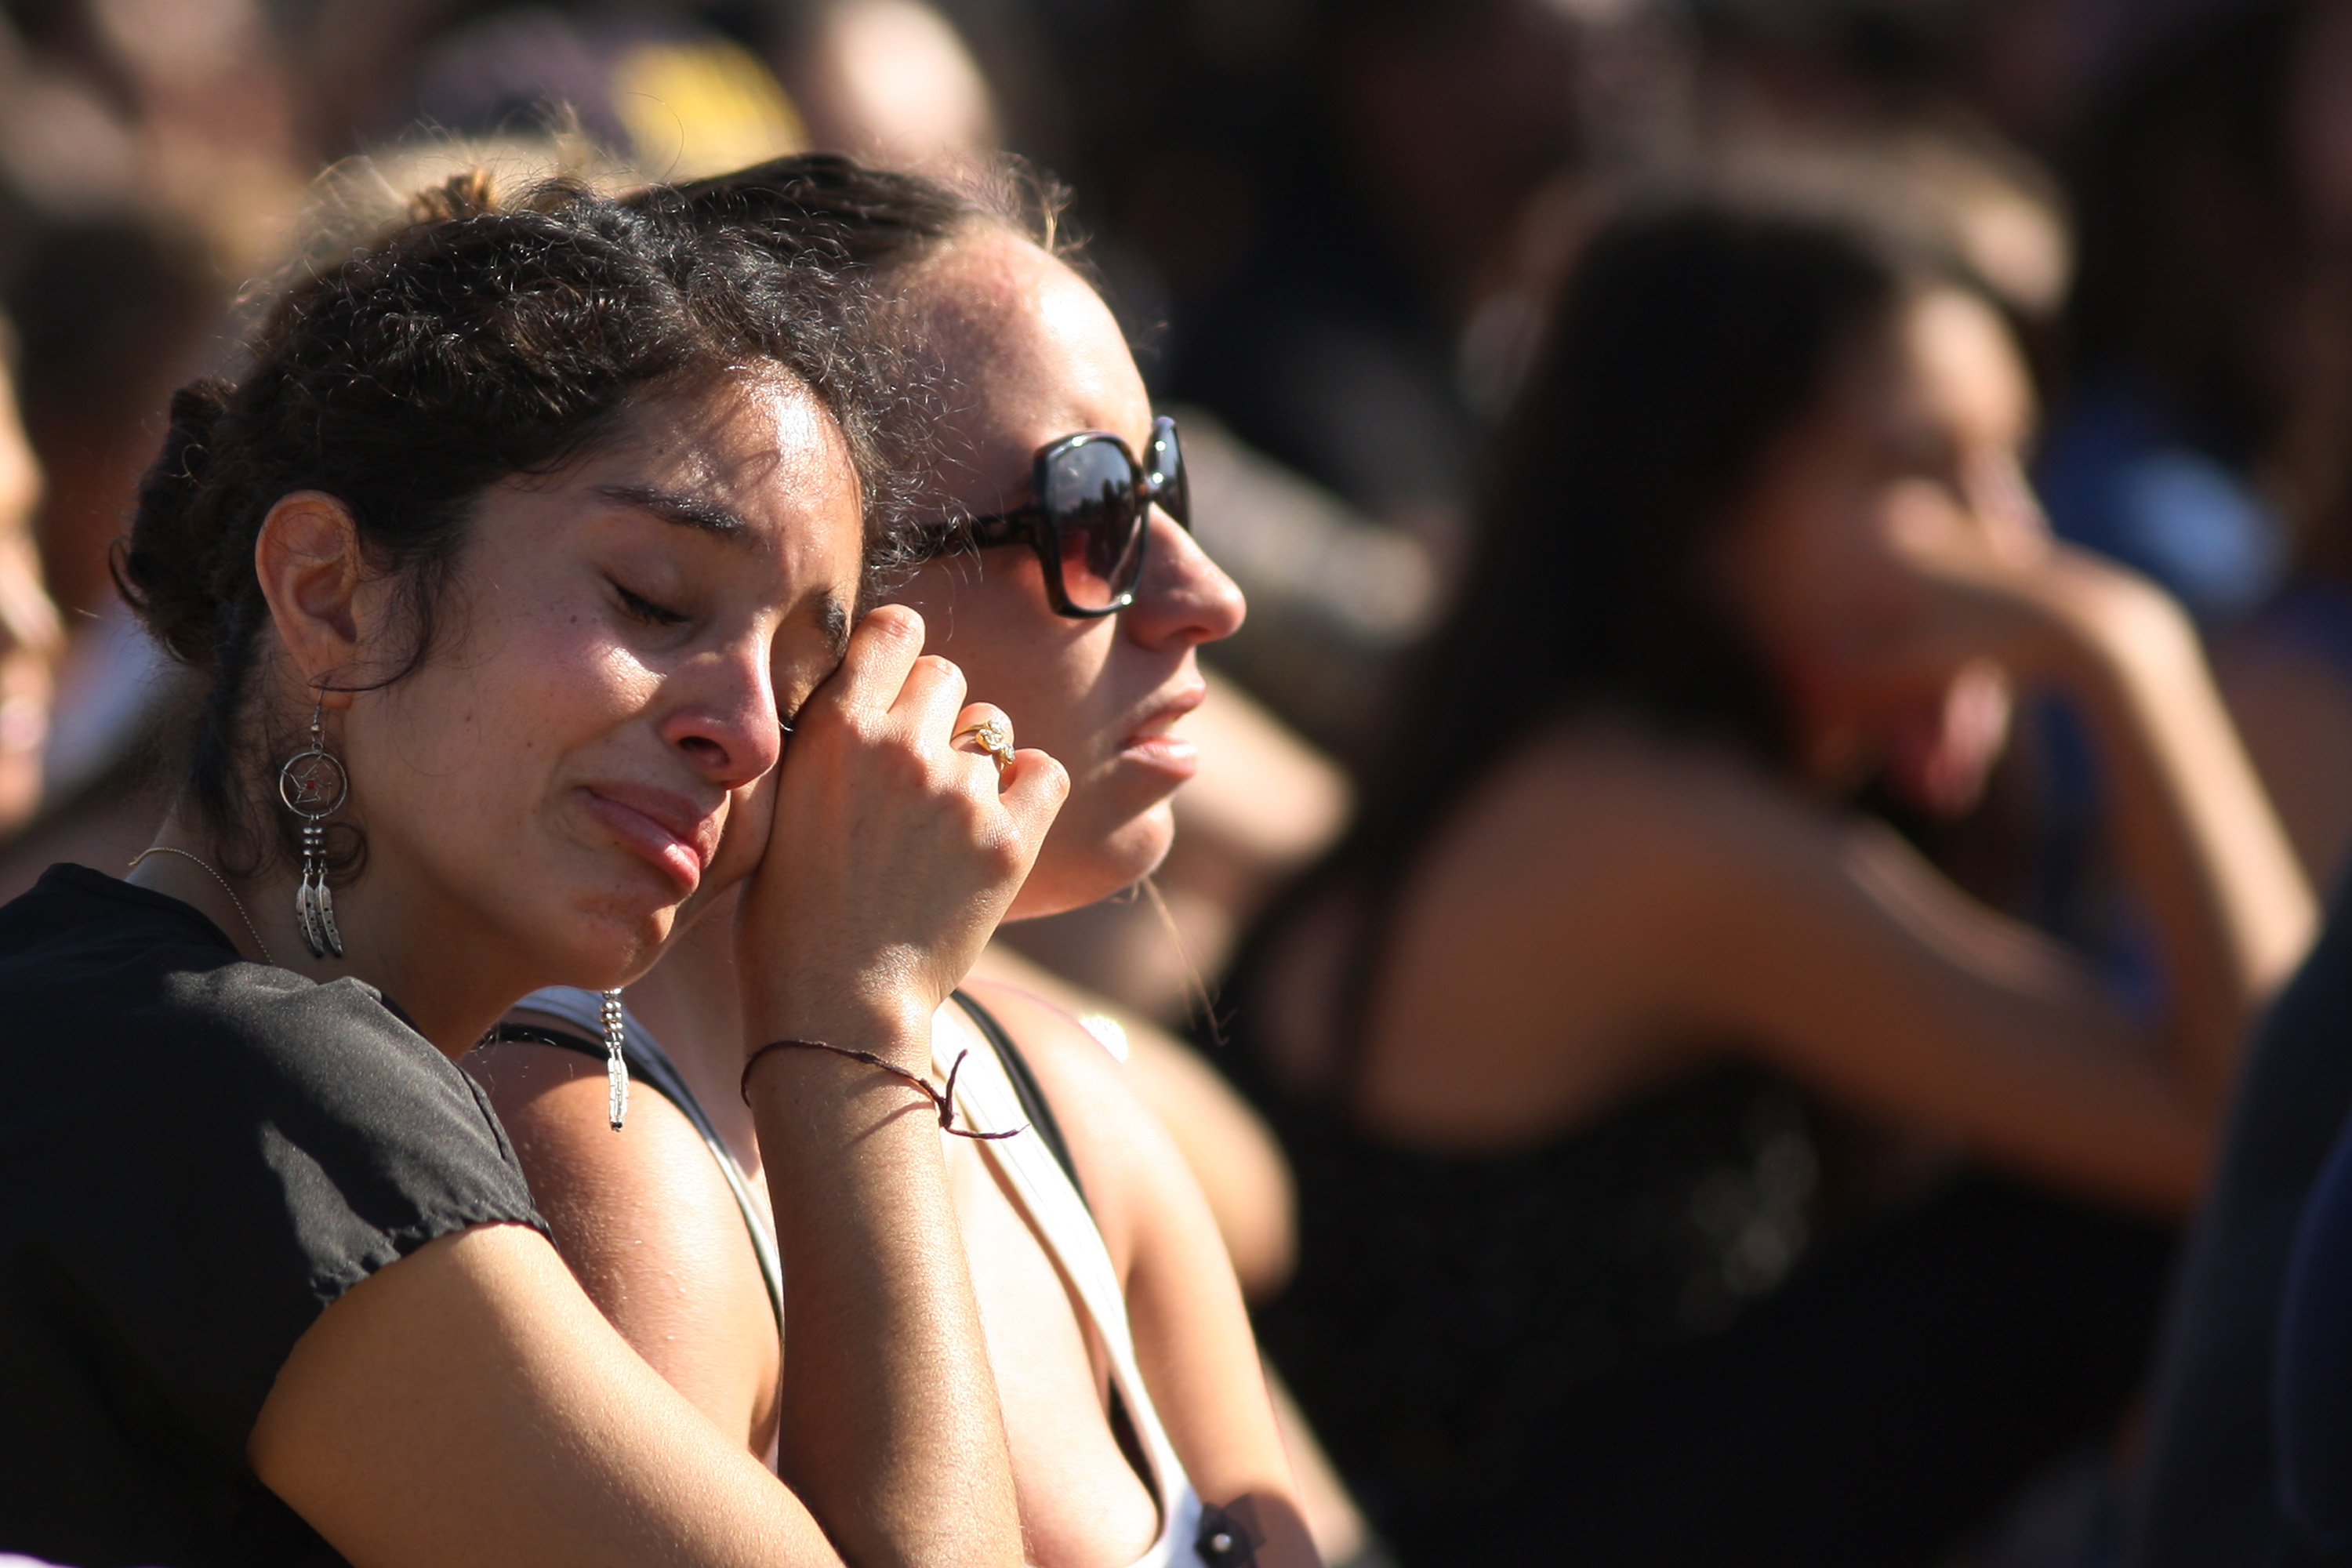 Students mourn at a public memorial service on the Day of Mourning and Reflection for the victims of a killing spree at University of California, Santa Barbara on May 27, 2014 in Isla Vista, California.